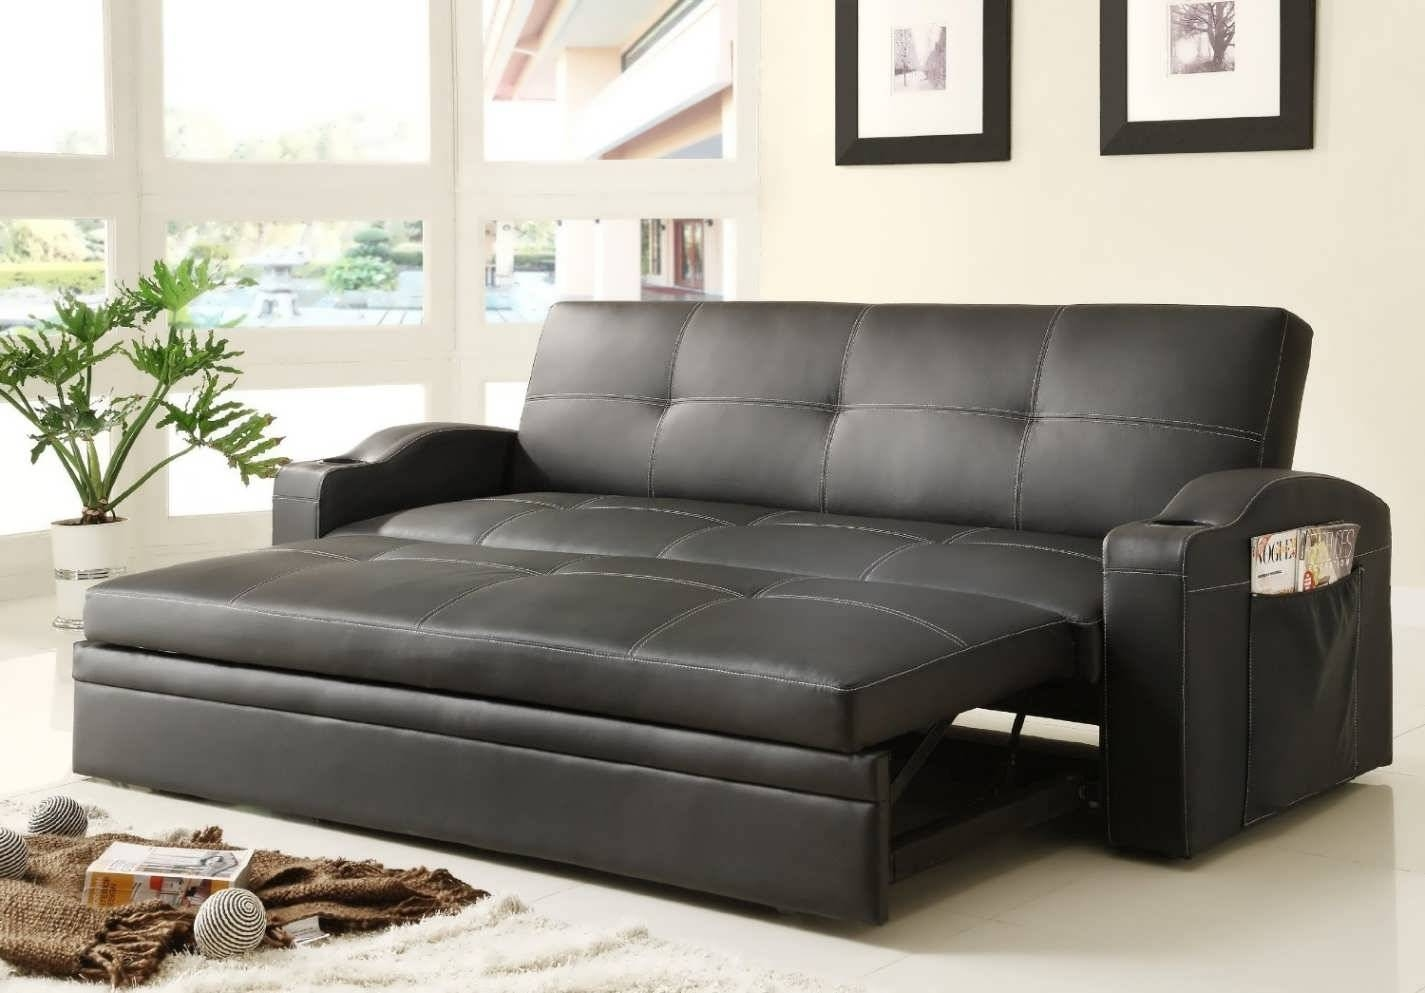 Sofa : Living Room Sets Futon Sleeper Sofa Cheap Sleeper Sofas inside Queen Convertible Sofas (Image 14 of 15)